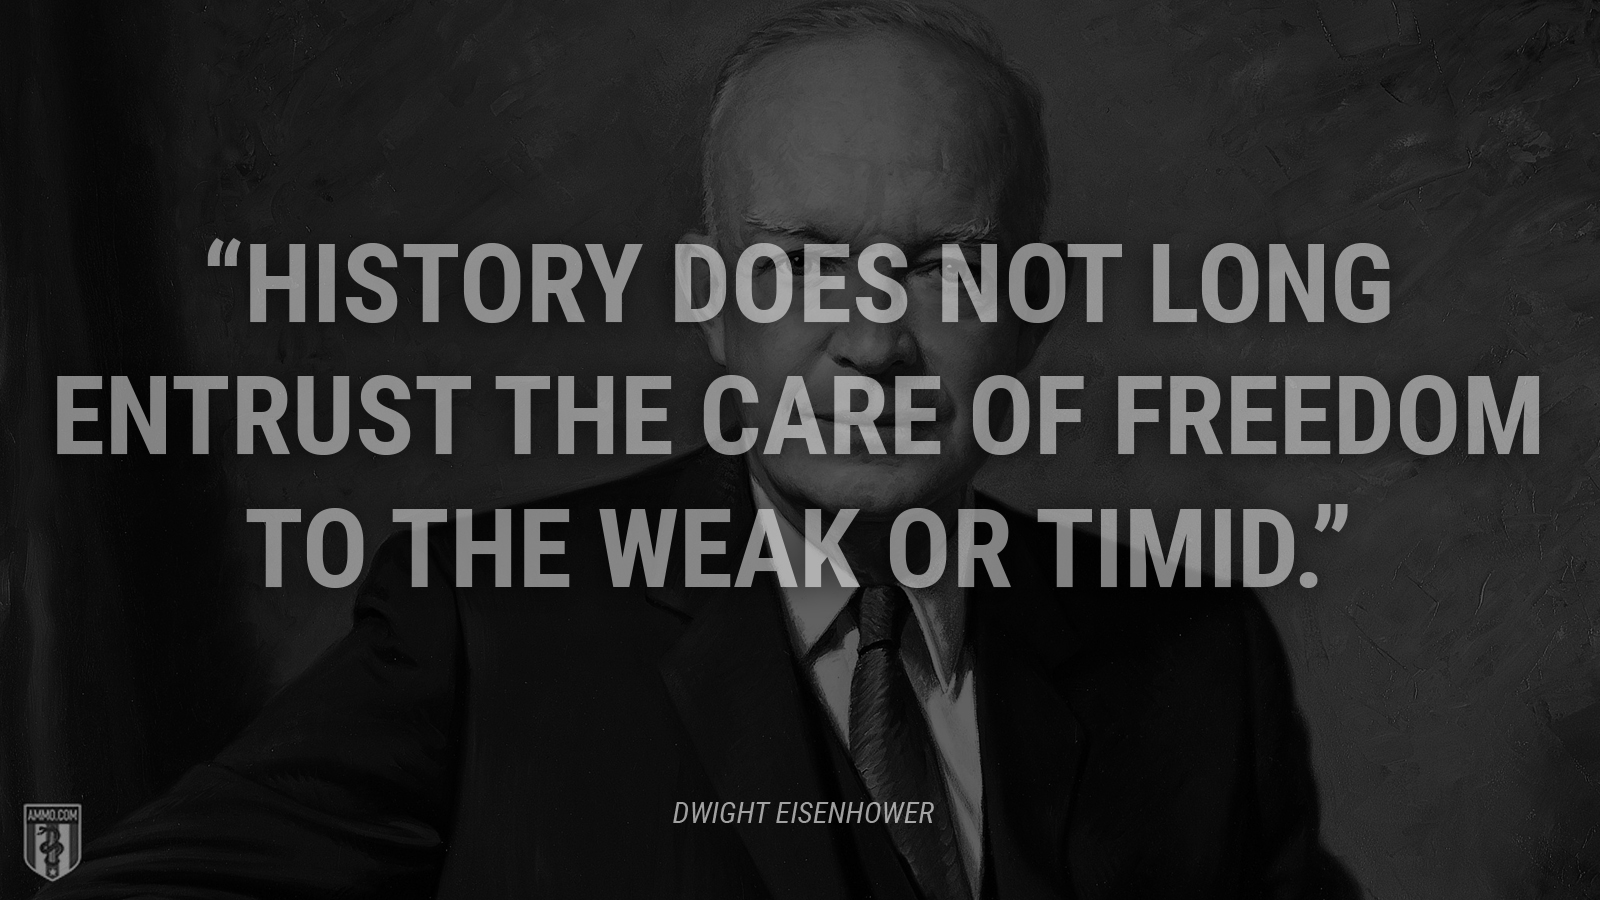 """History does not long entrust the care of freedom to the weak or timid."" - Dwight Eisenhower"